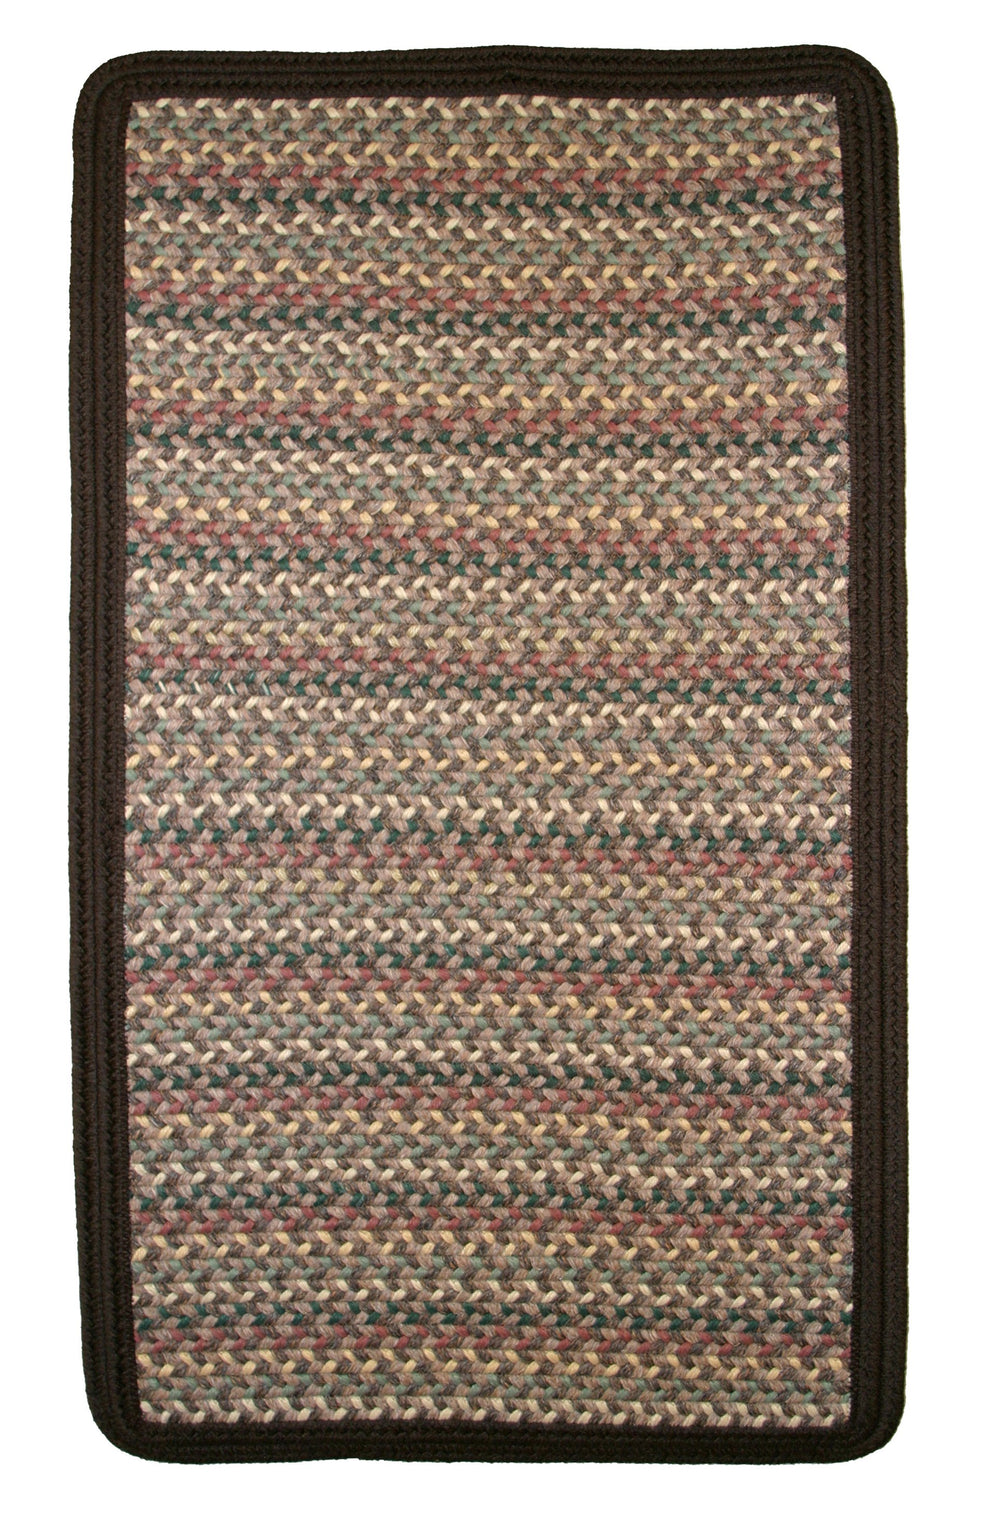 Thorndike Mills Pioneer Valley II Autumn Wheat w/DK Brown Solids Area Rug